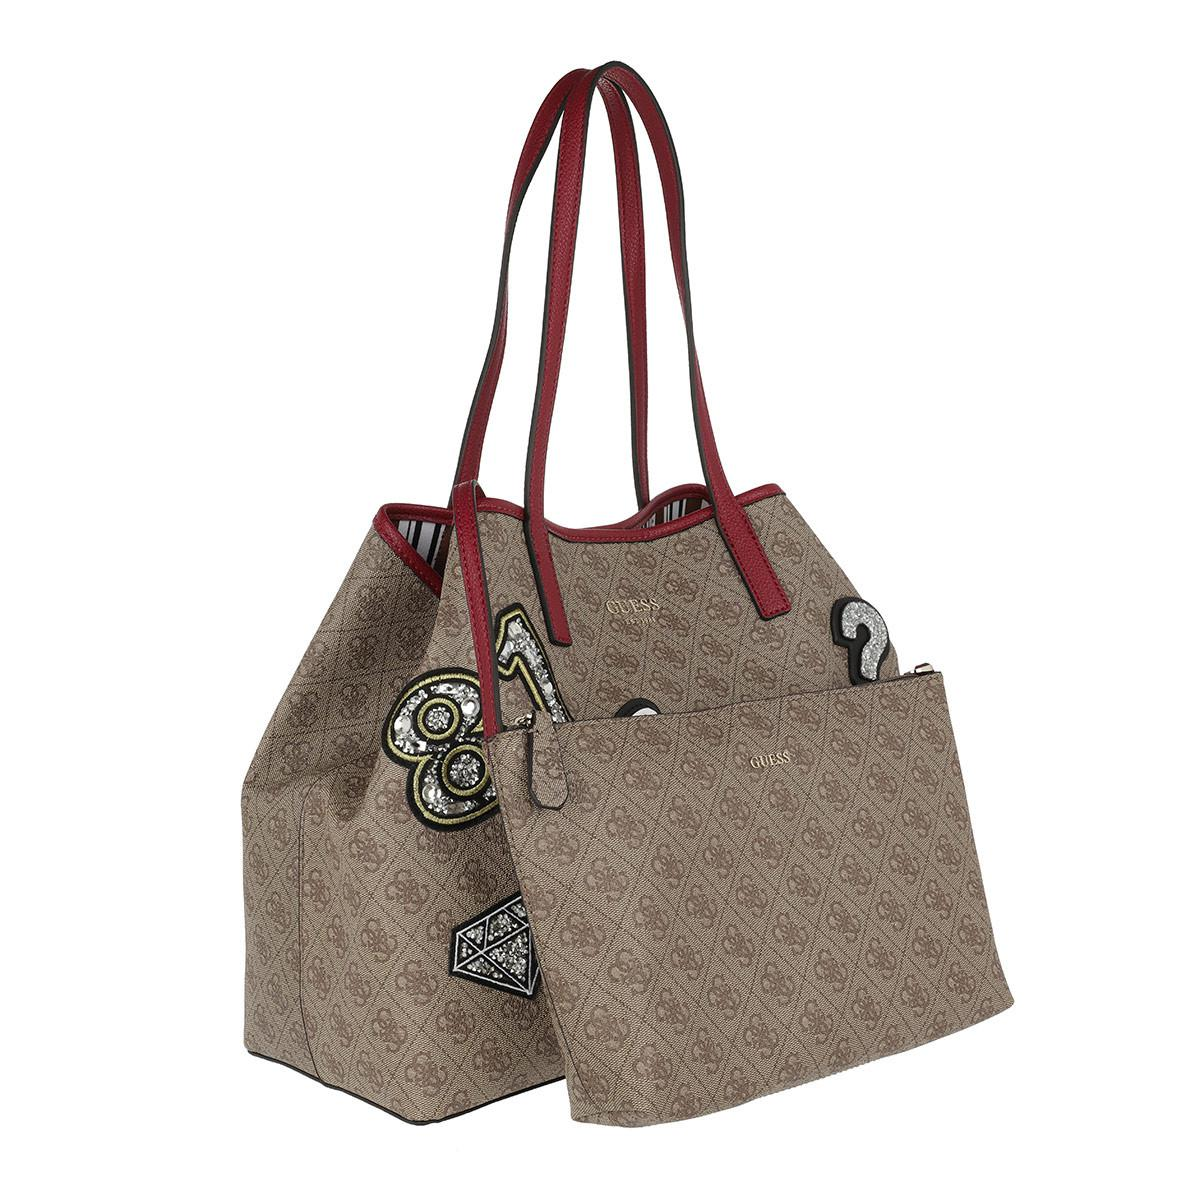 62b370b4f45 Guess Vikky Large Tote Brown Multi in Brown - Lyst